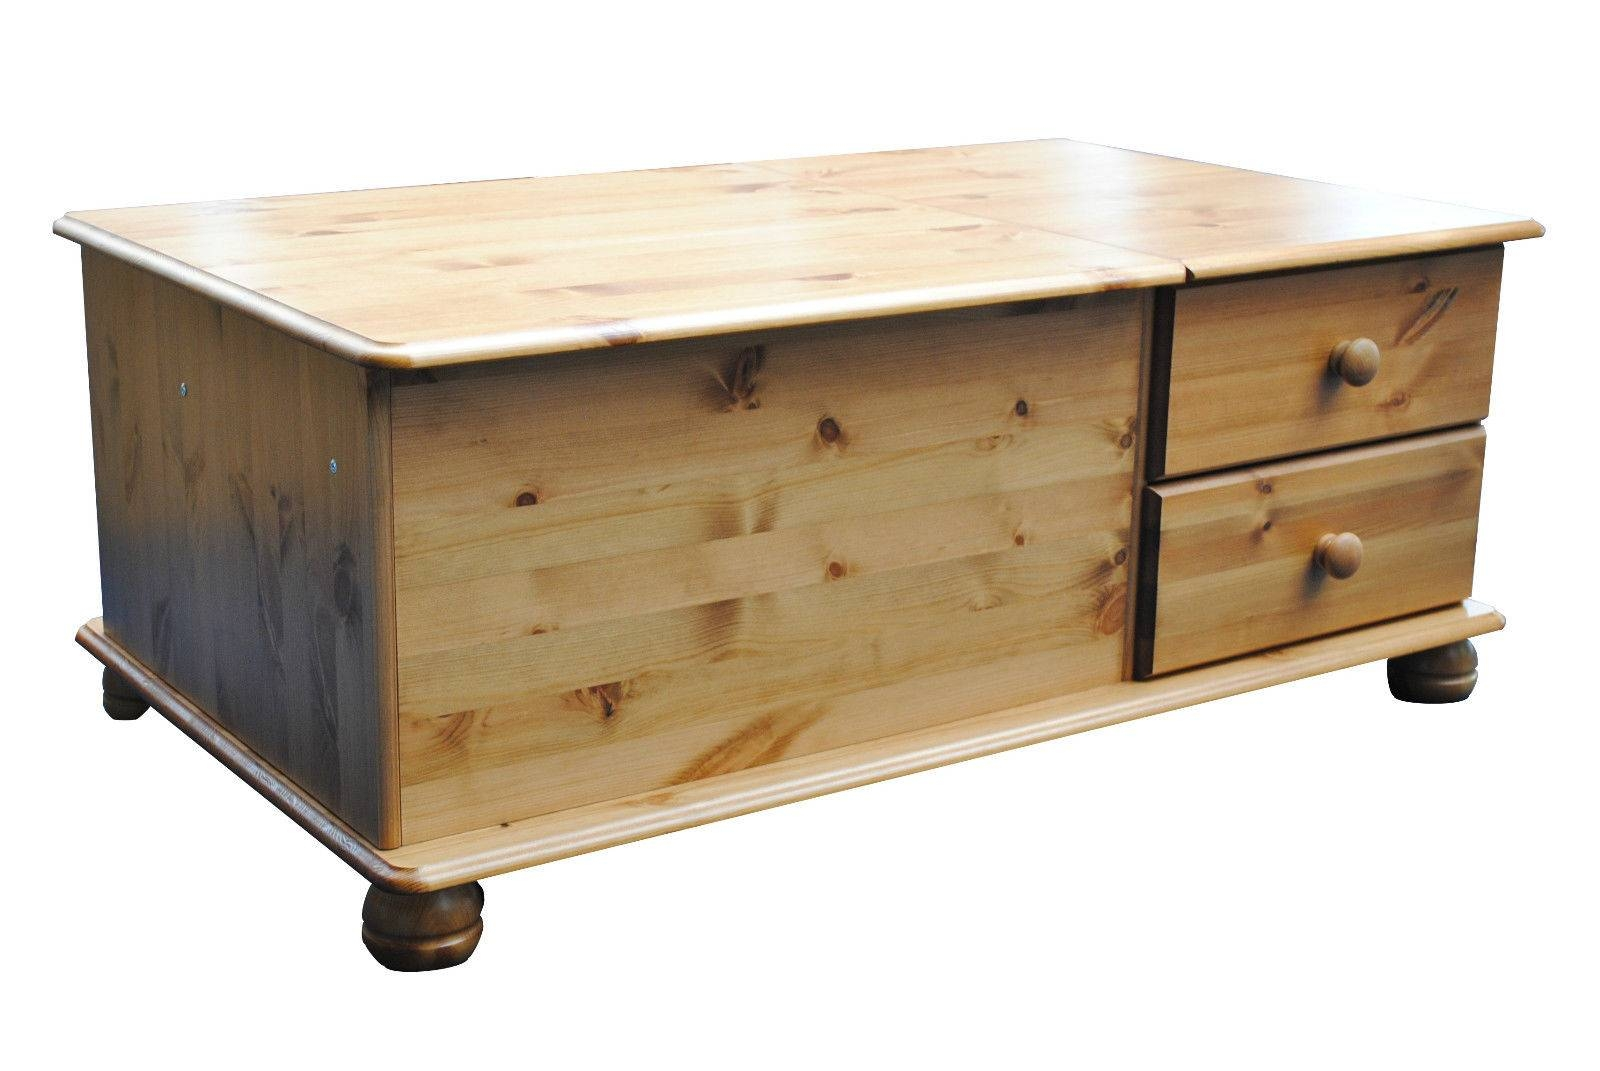 Coffee Table With Storage inside Pine Coffee Tables With Storage (Image 5 of 30)